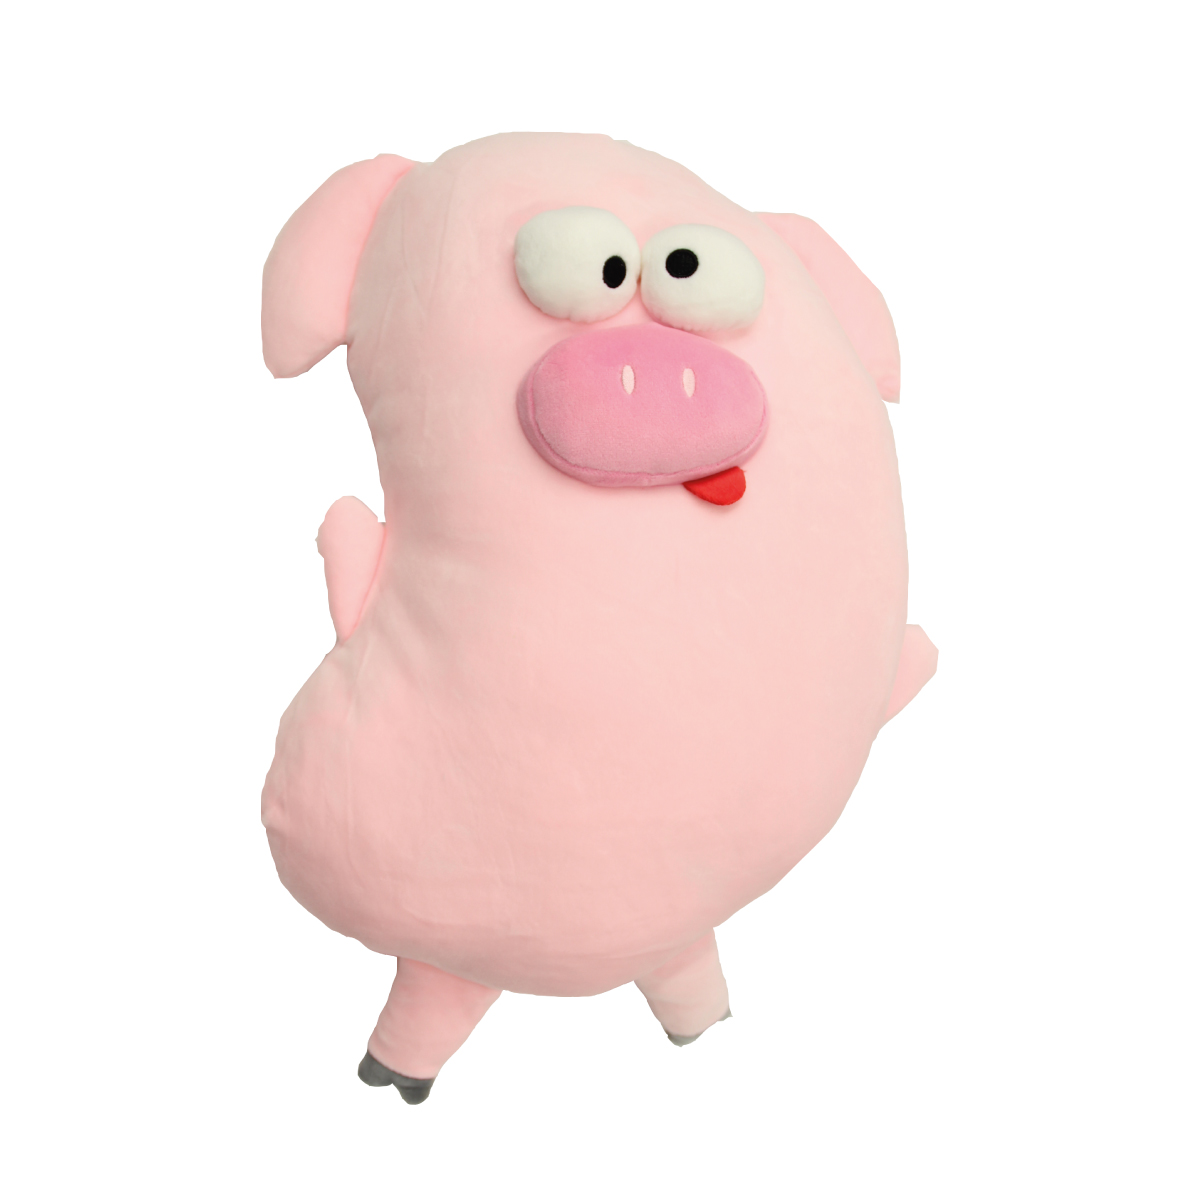 Stuffed Toy - Adorable Piglet